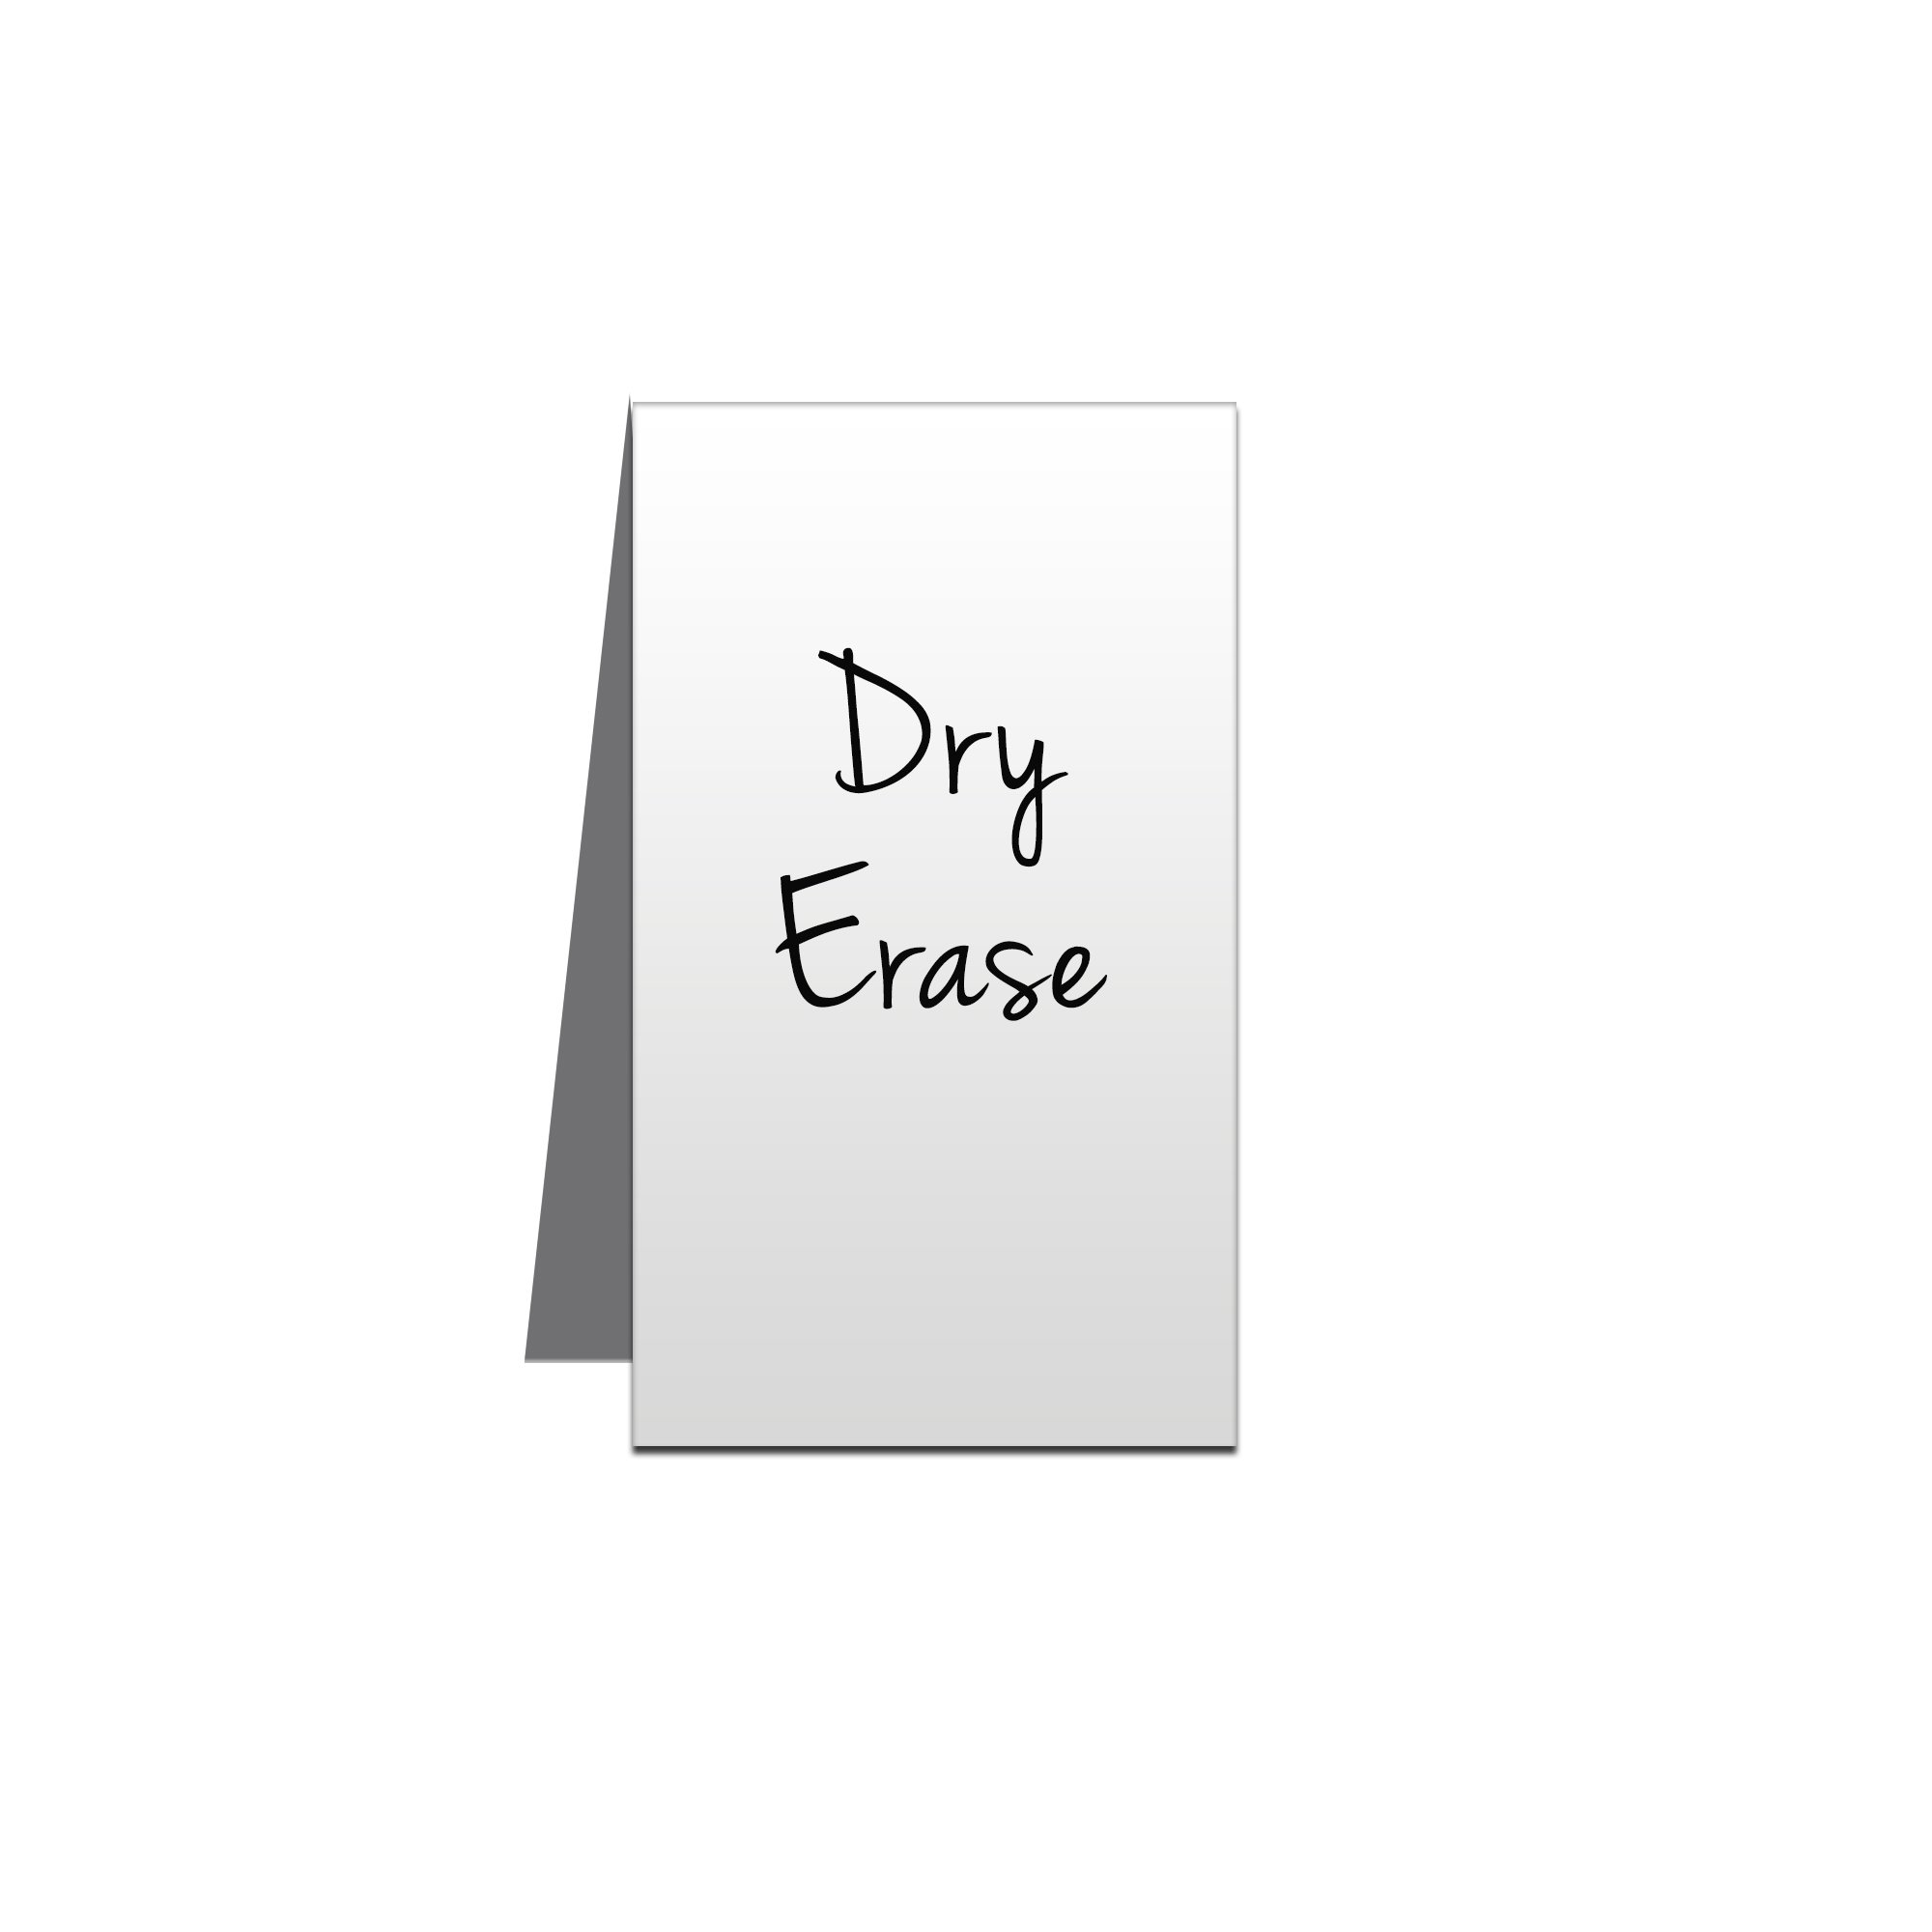 3 x 5 Dry Erase Metal Place Cards - Pack of 5 by NapTags